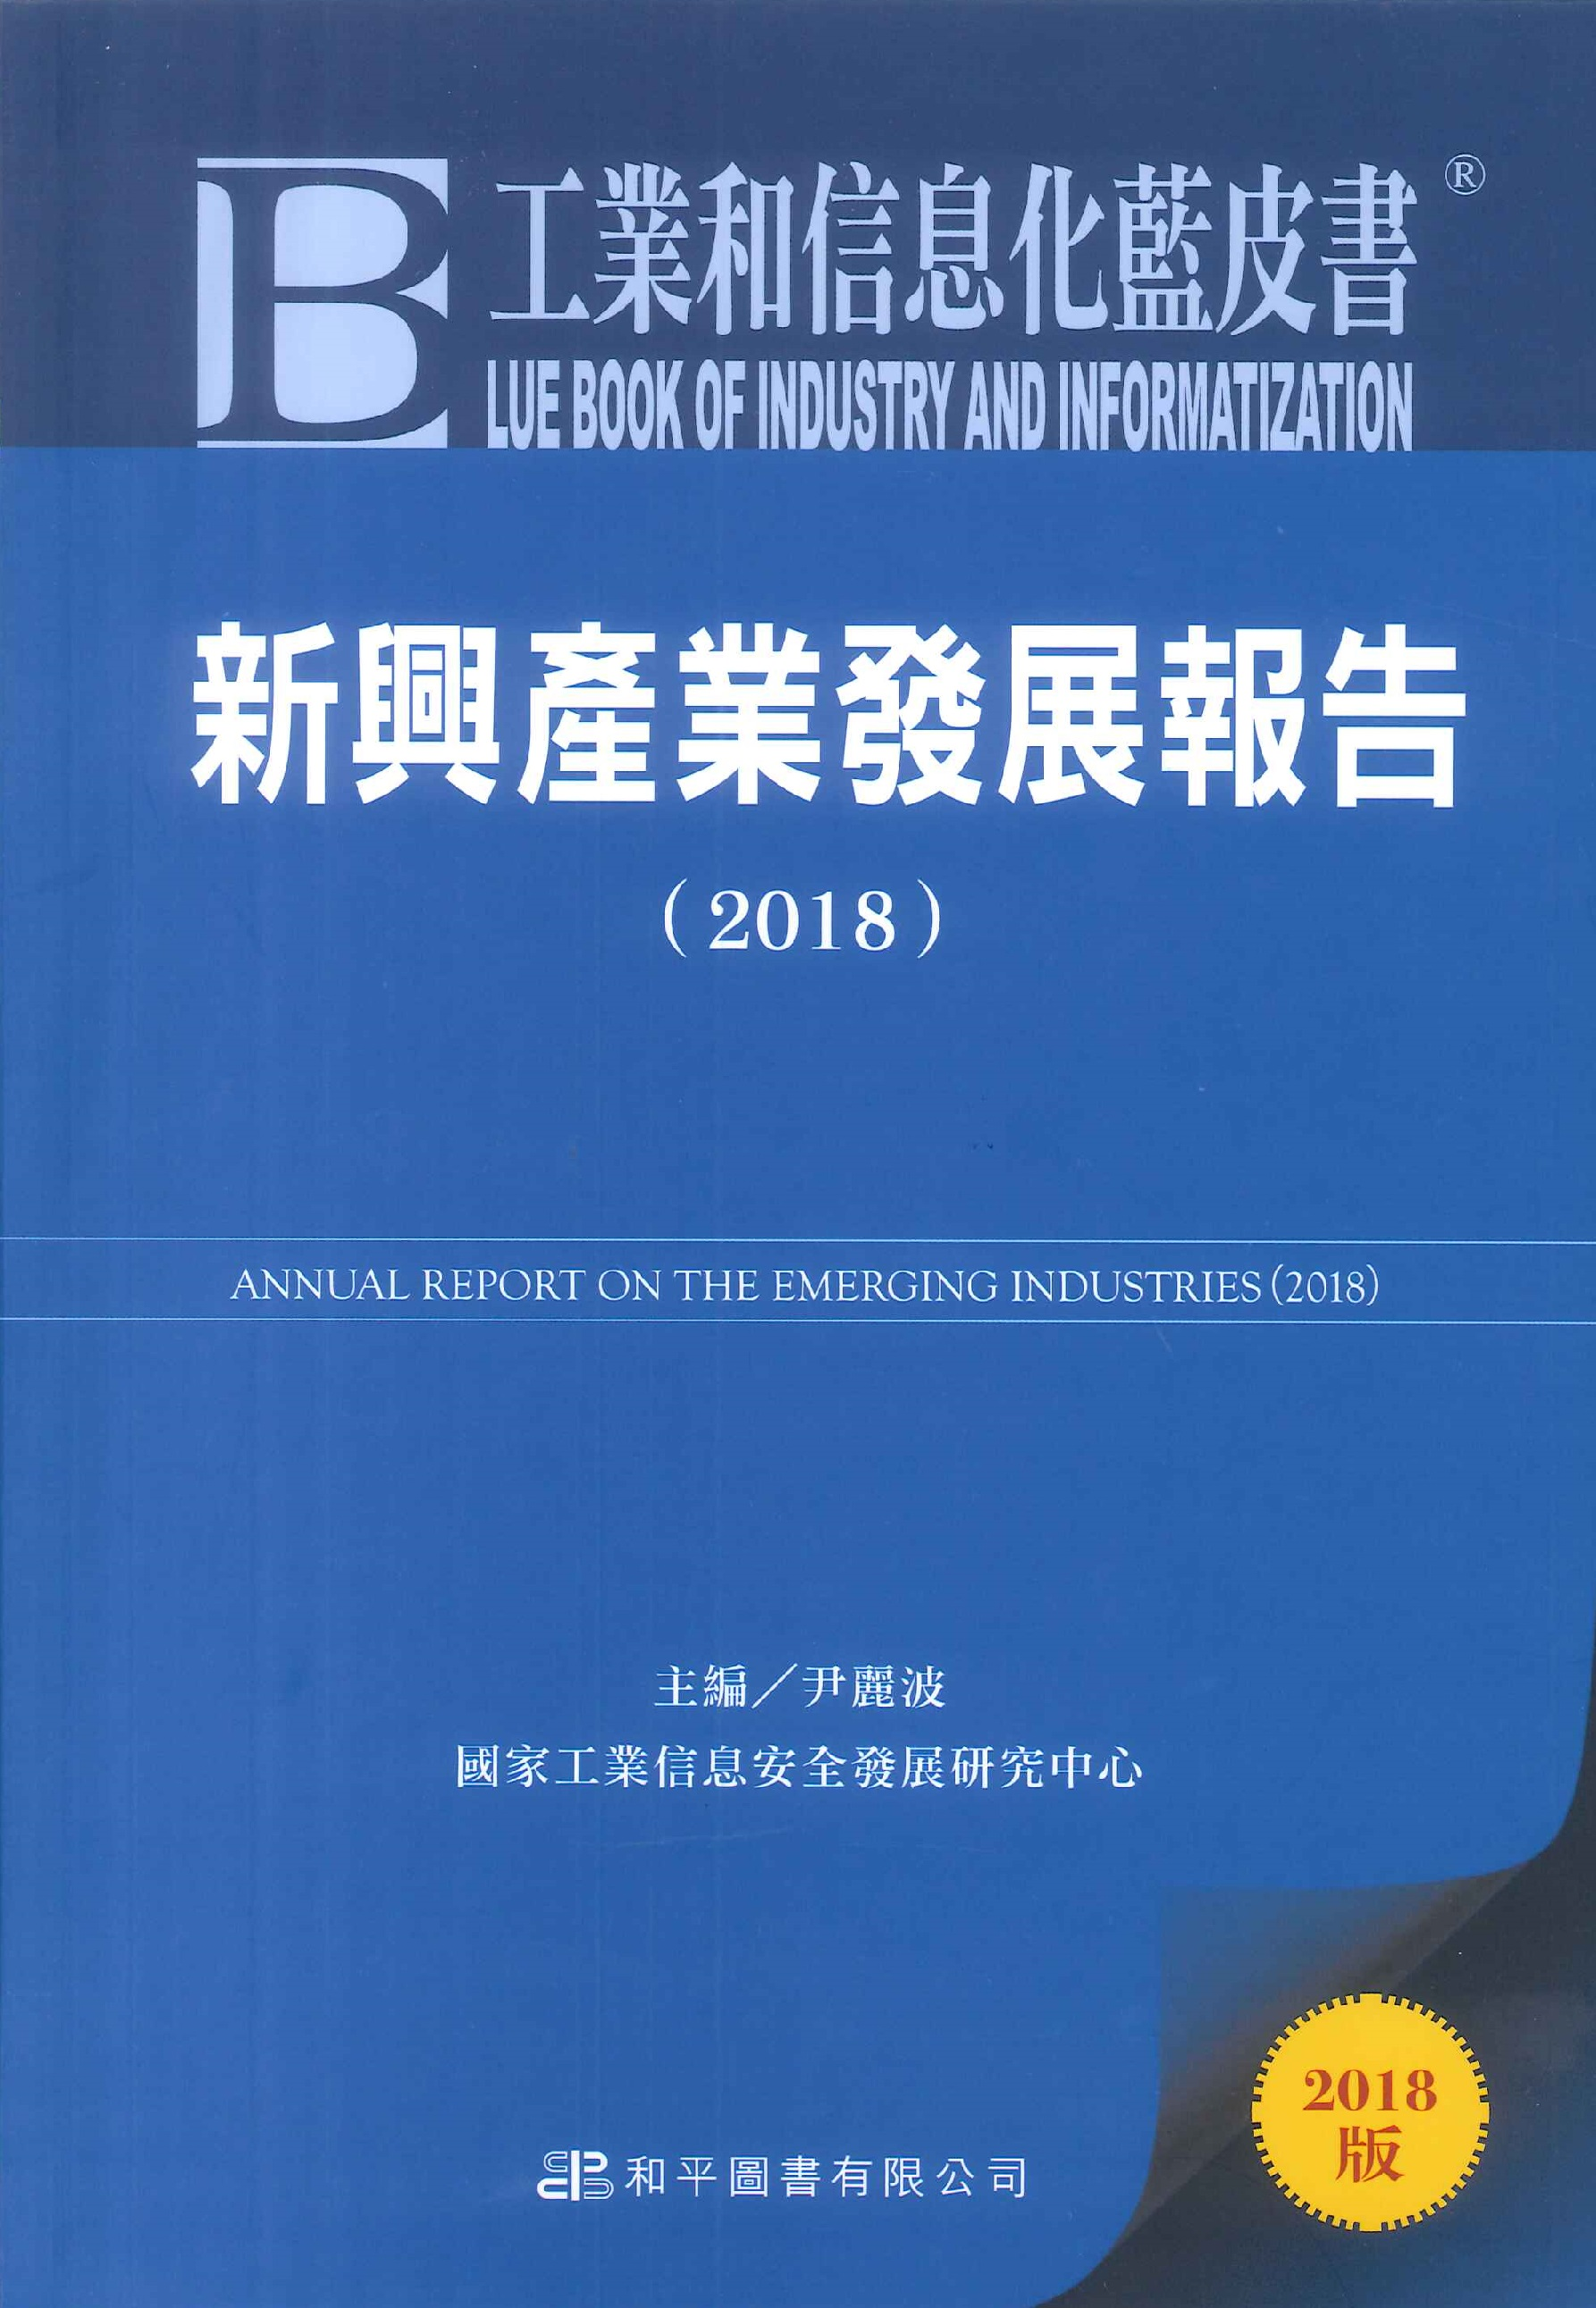 新興產業發展報告.2018=Annual report on the emerging industries